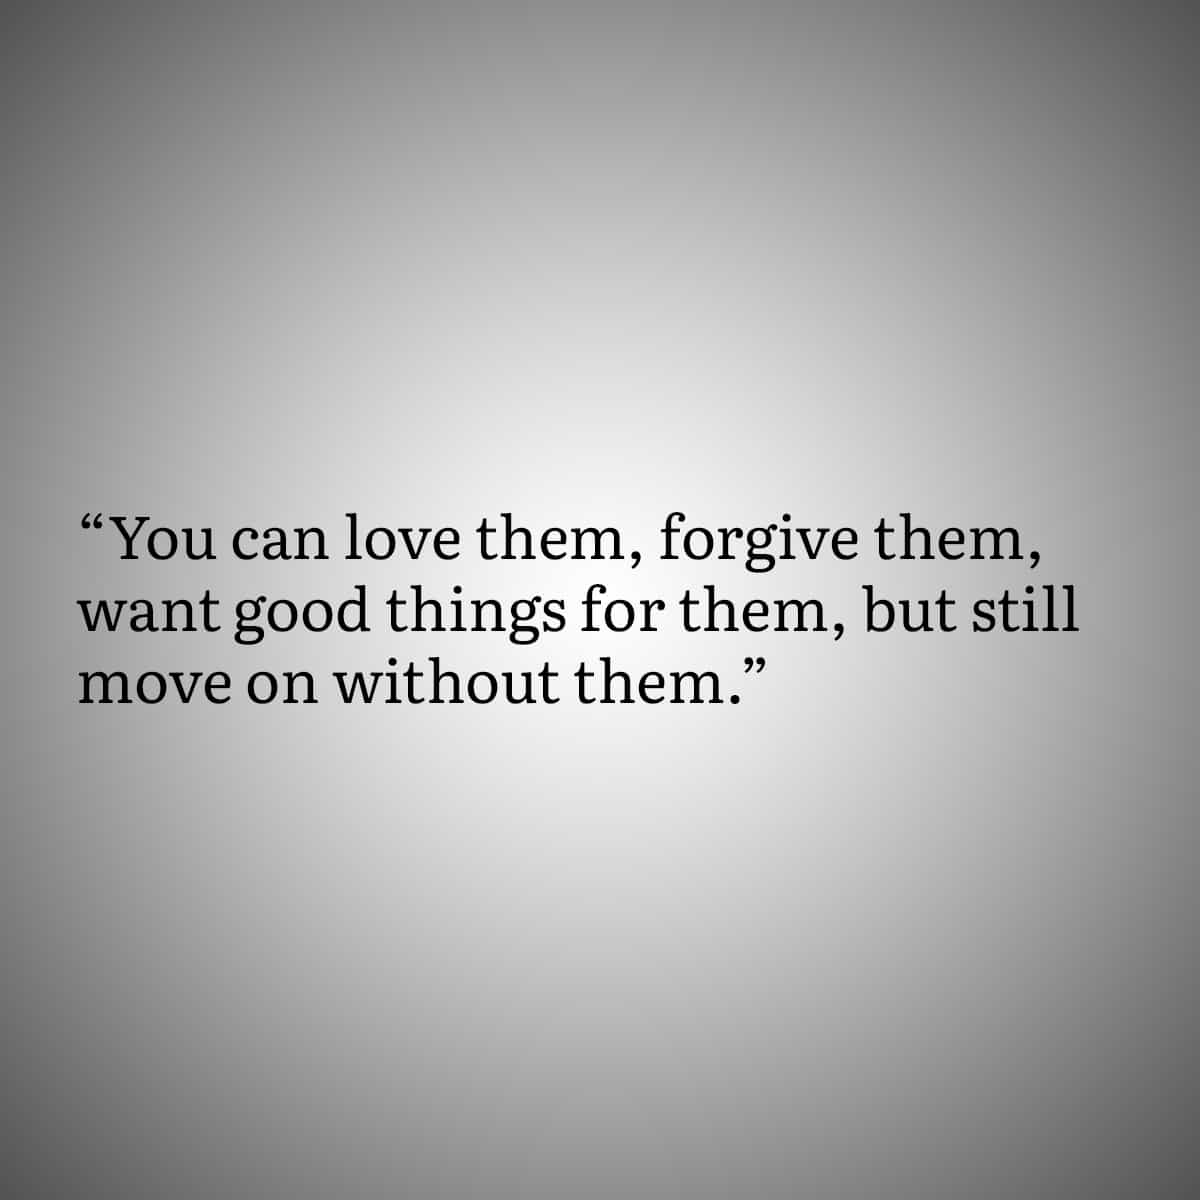 Quote 7:  You can love them, forgive them, want good things for then, but still move on without them.